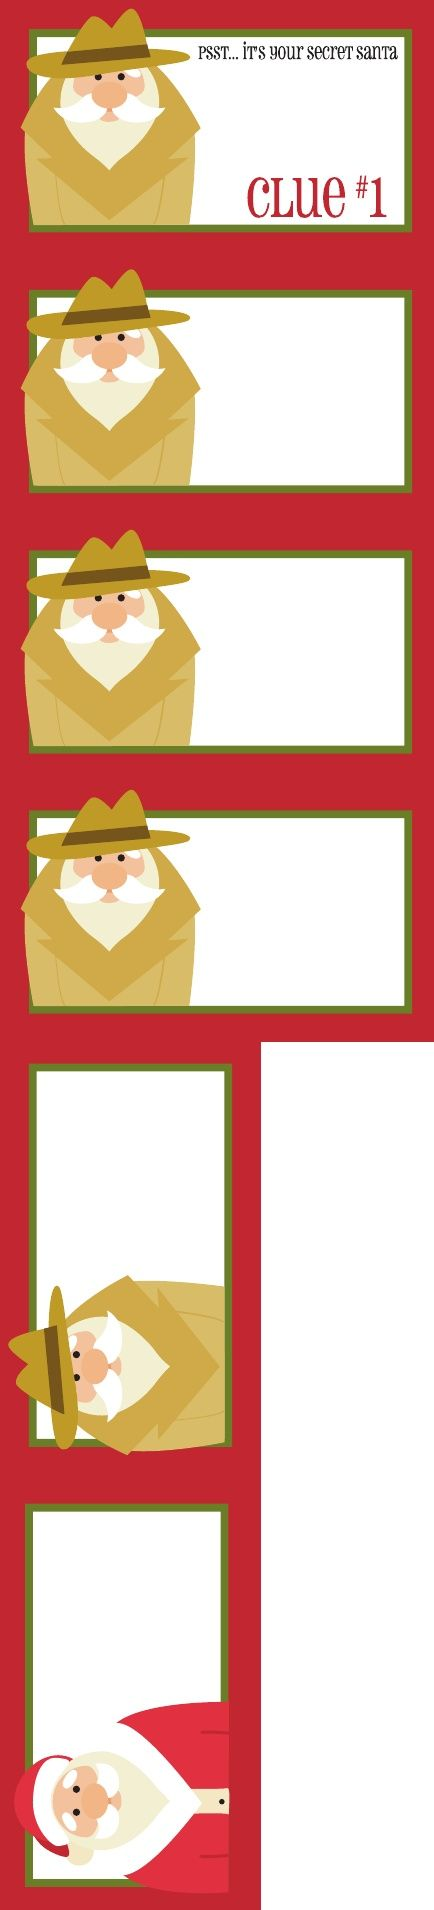 Free Printable Secret Santa Gift Tags